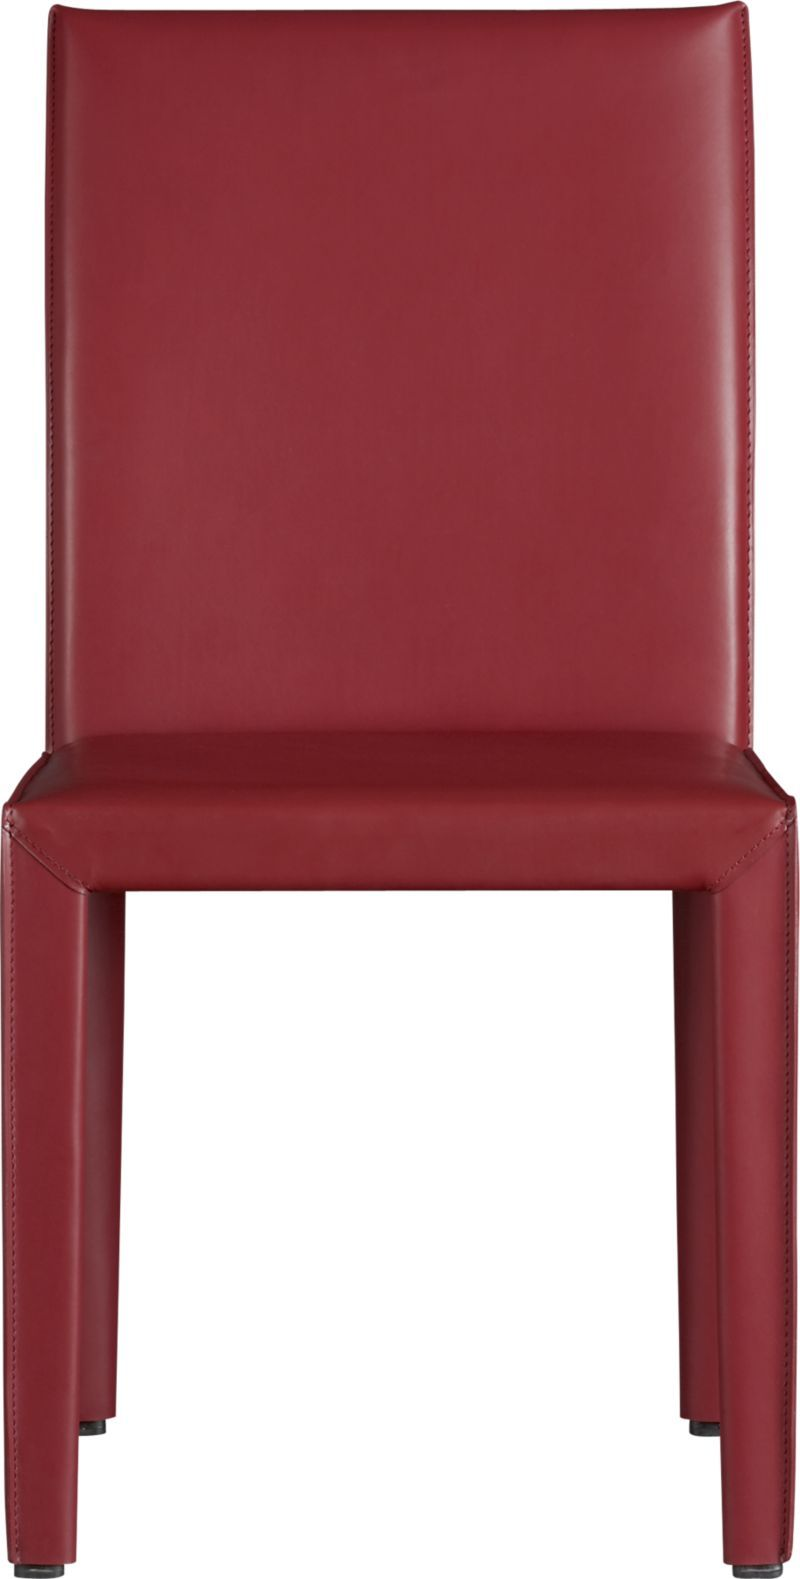 Folio Cherry Bonded Leather Side Chair Crate And Barrel 259